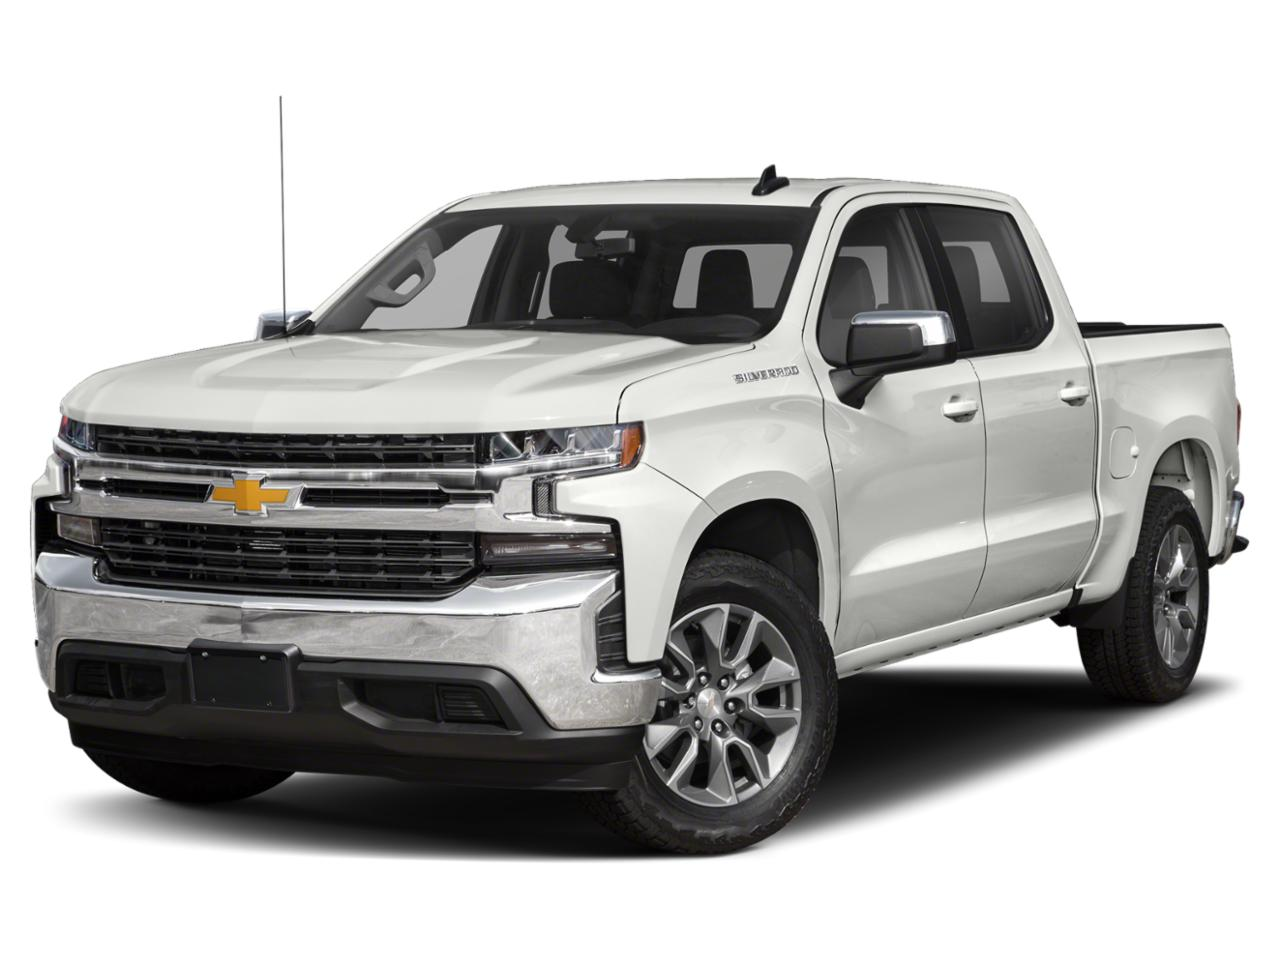 2020 Chevrolet Silverado 1500 HIGH COUNTRY Crew Cab Pickup Slide